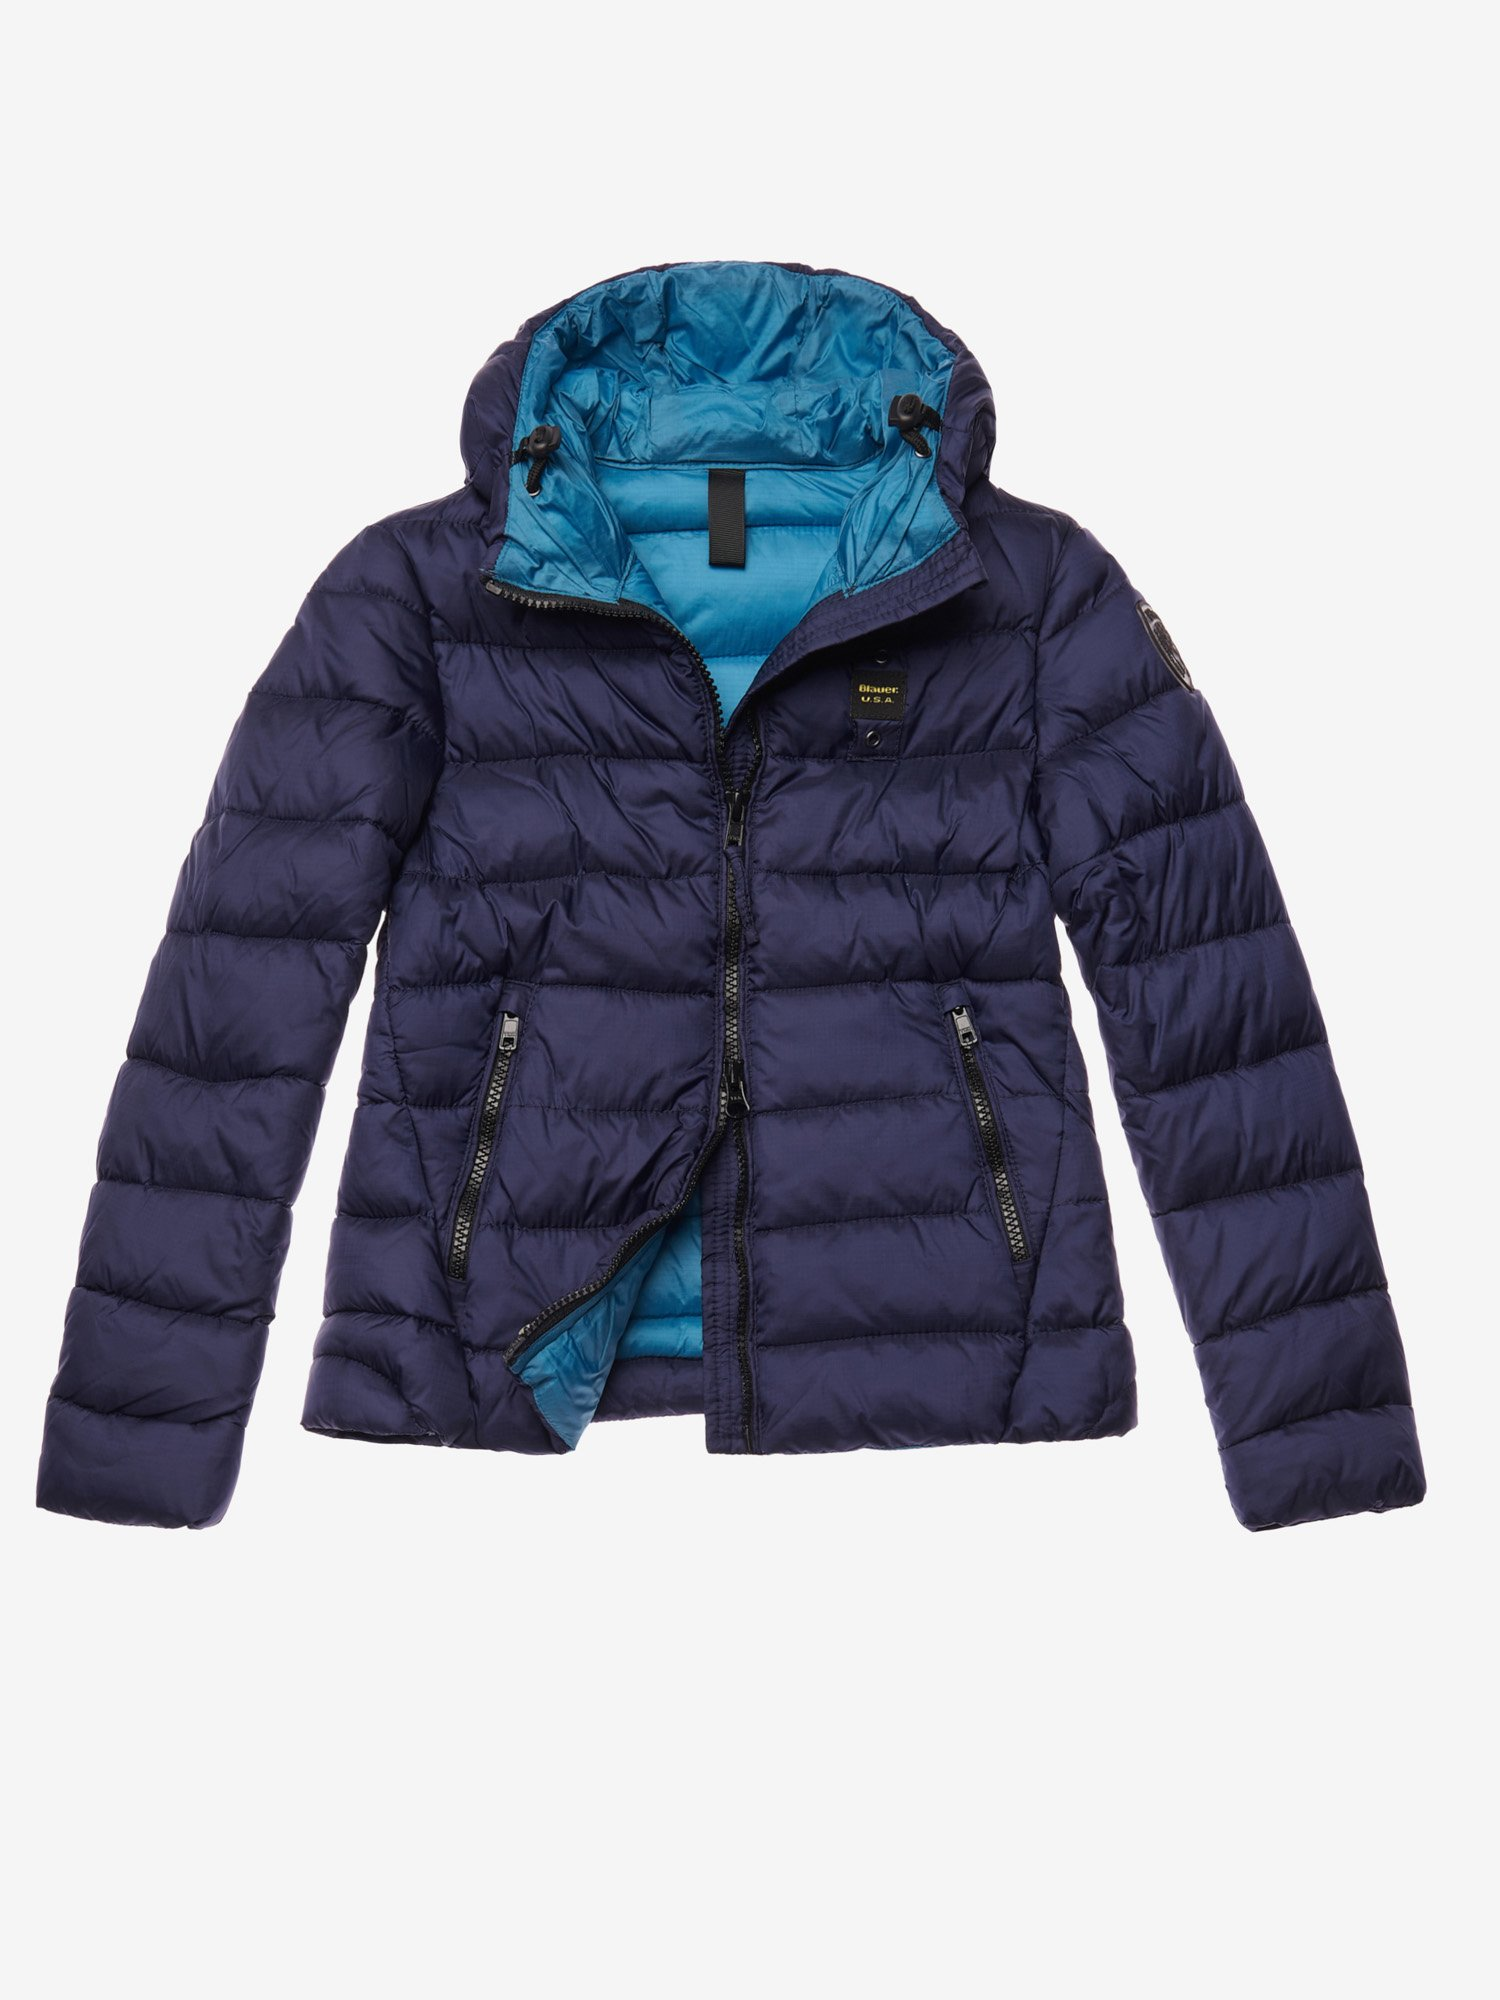 MARSH  BIO DOWN JACKET WITH HOOD - Blauer